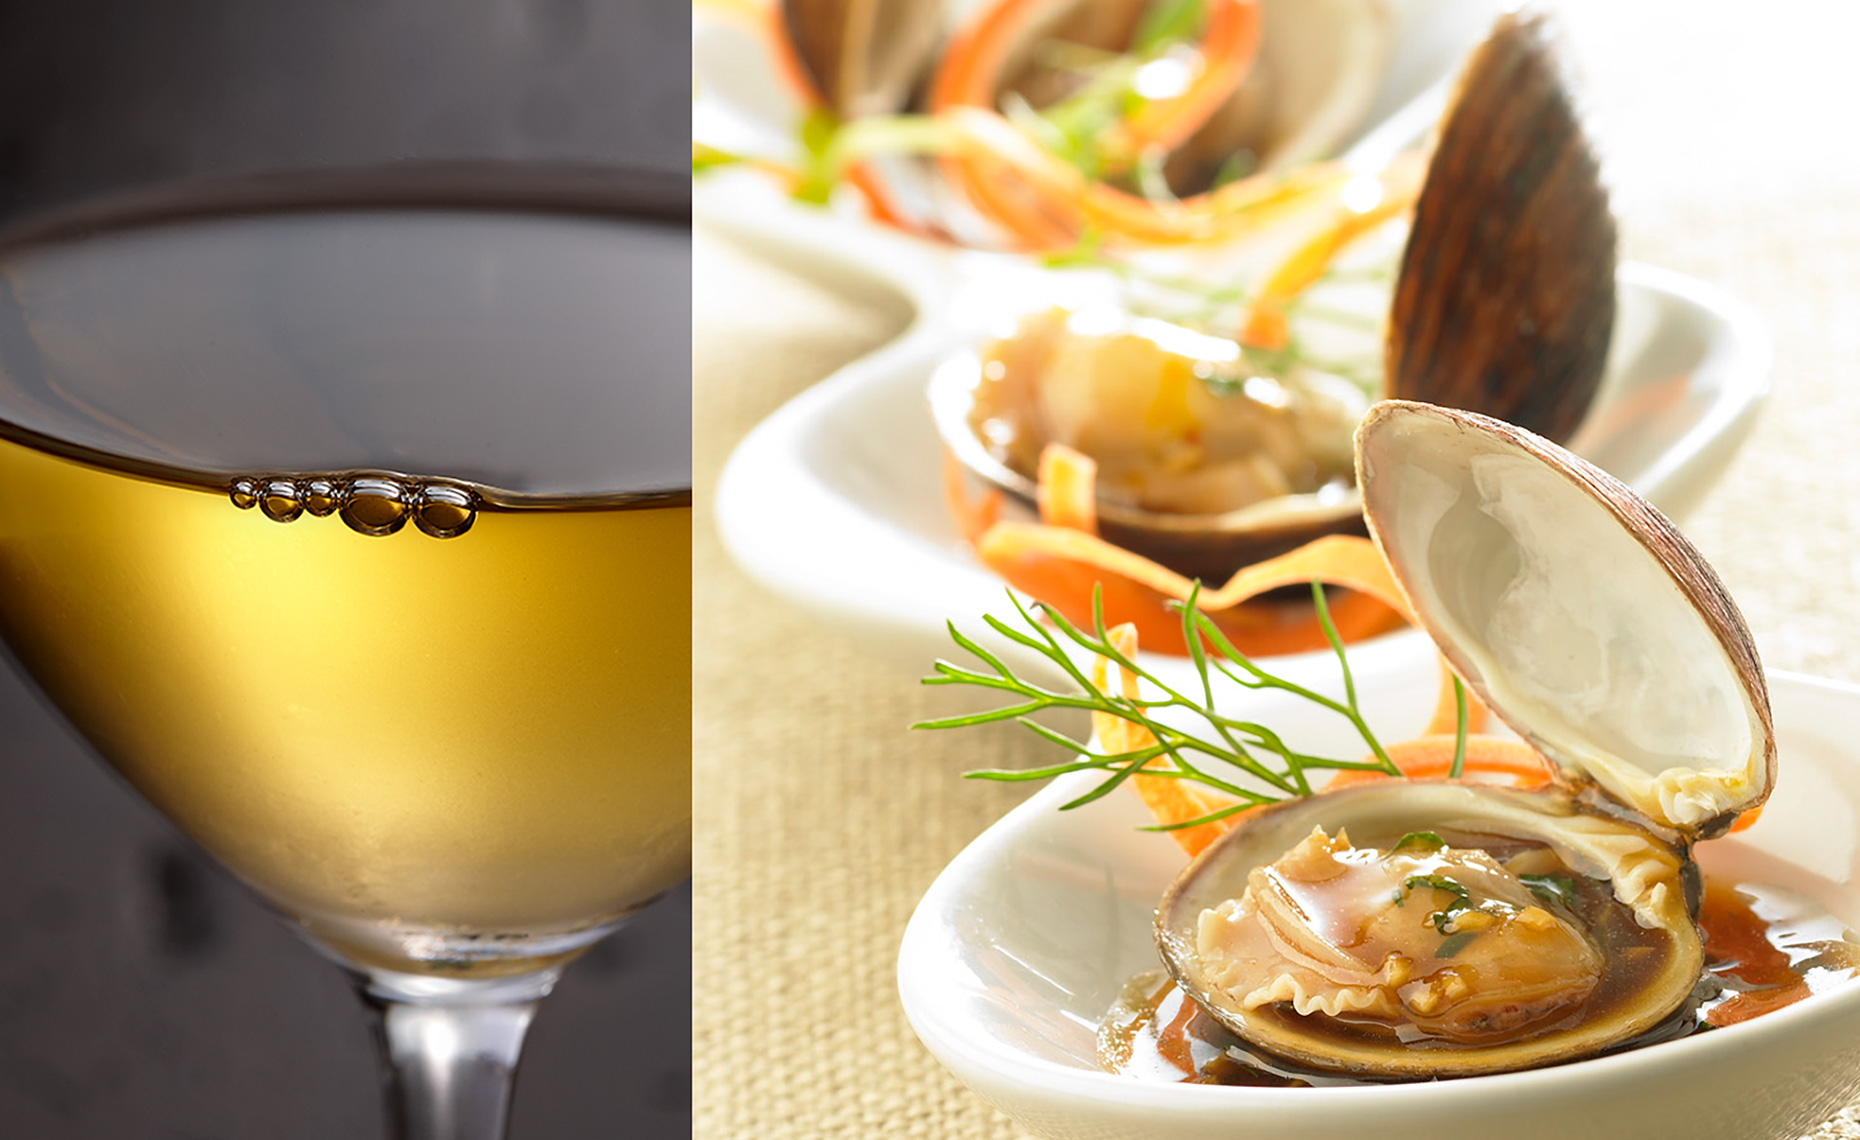 Food Photographer, Seafood Photography | Pohuski Studios,  Chardonnay Thai Mussels